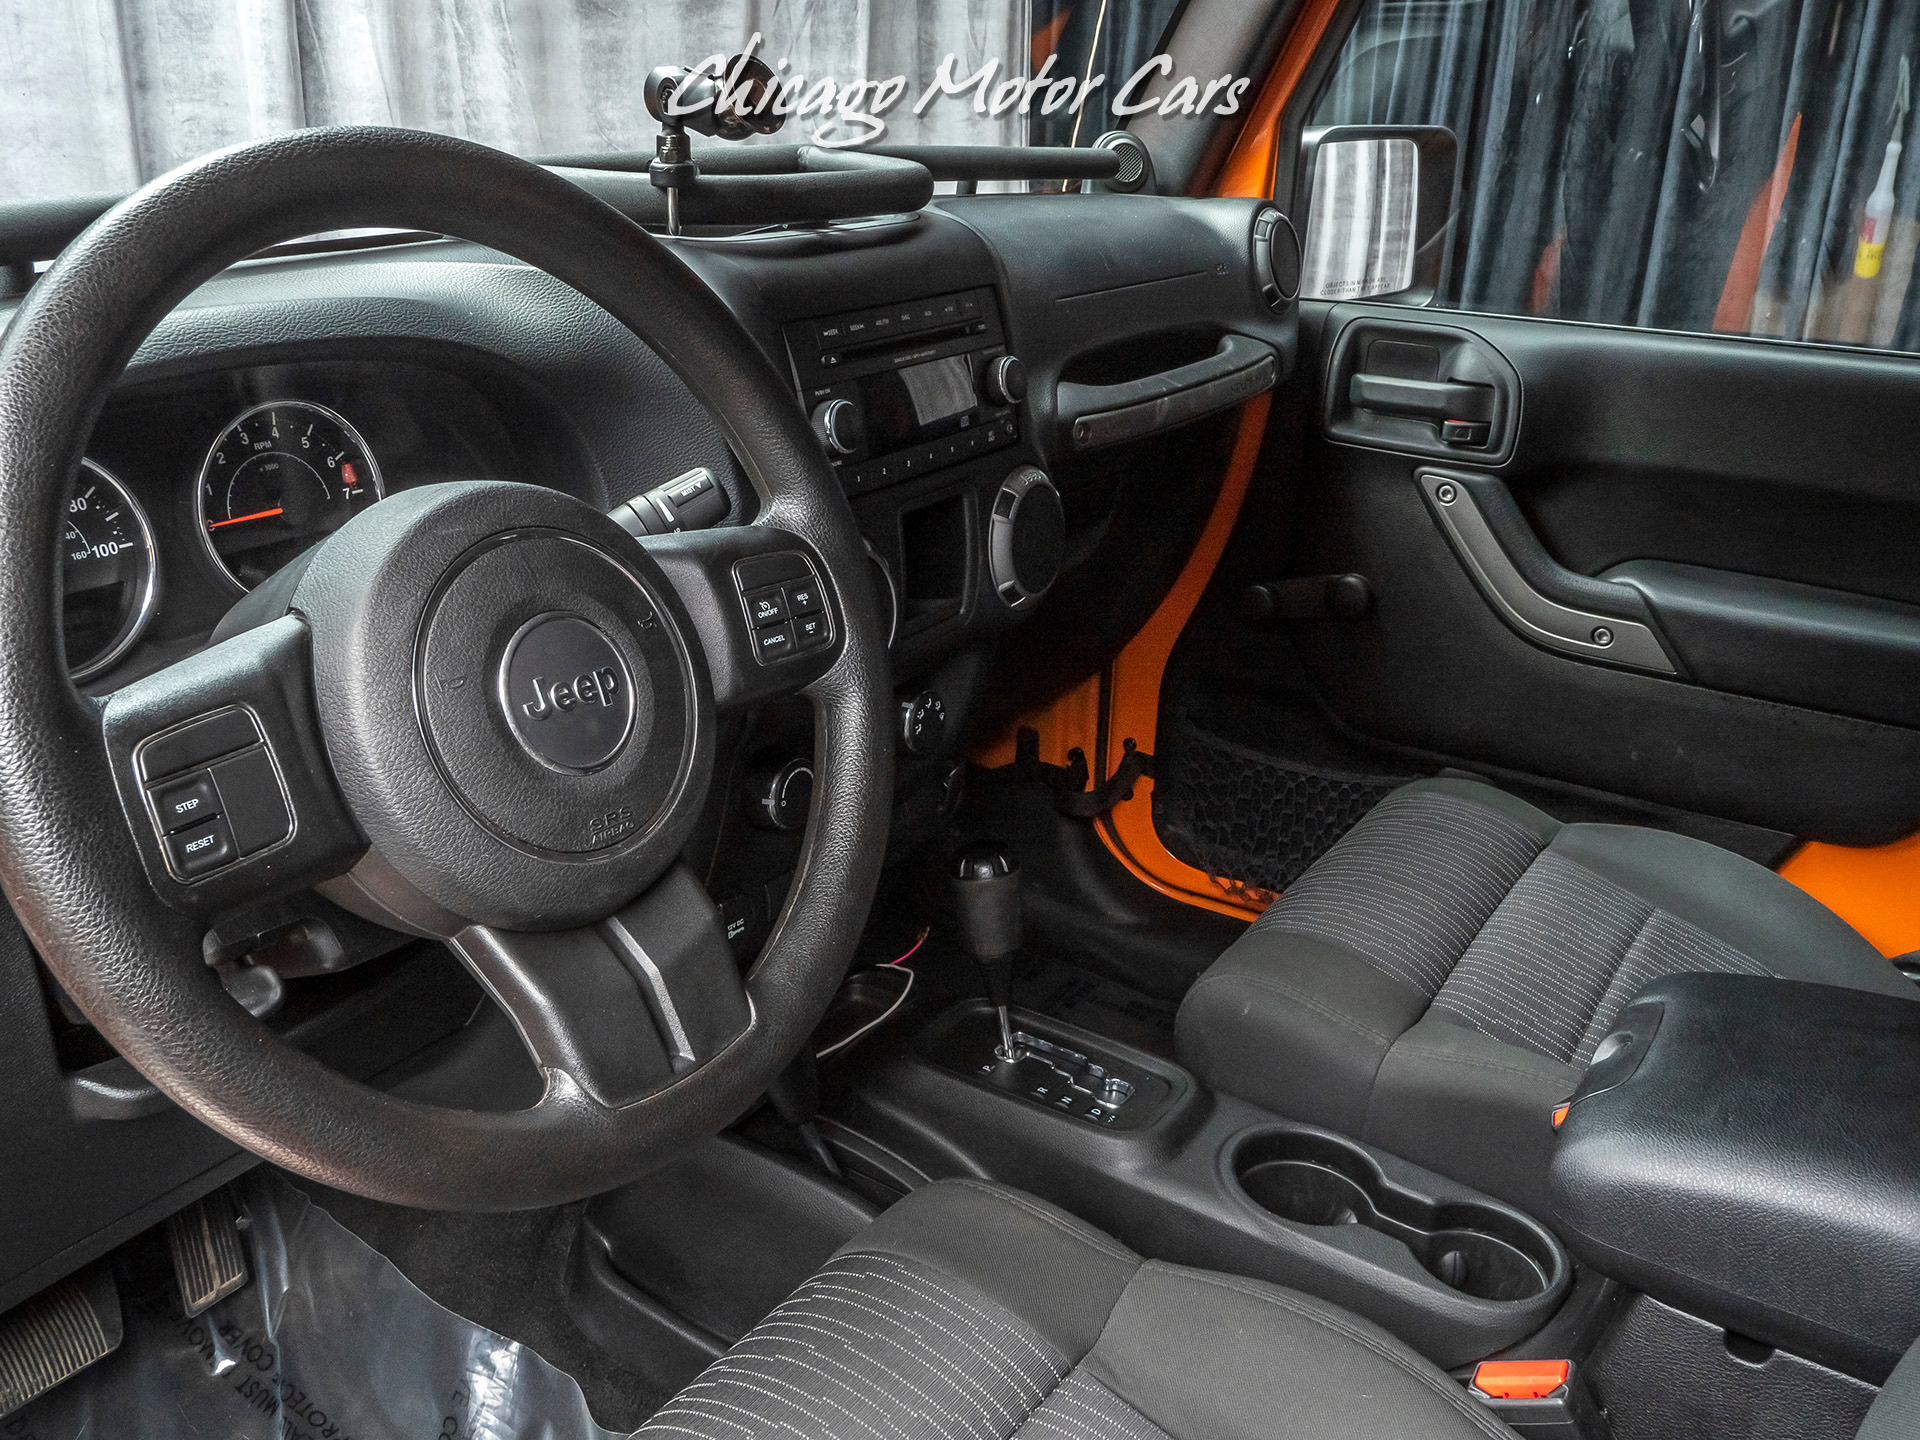 Used 2012 Jeep Wrangler 4x4 For Sale (Special Pricing) | Chicago